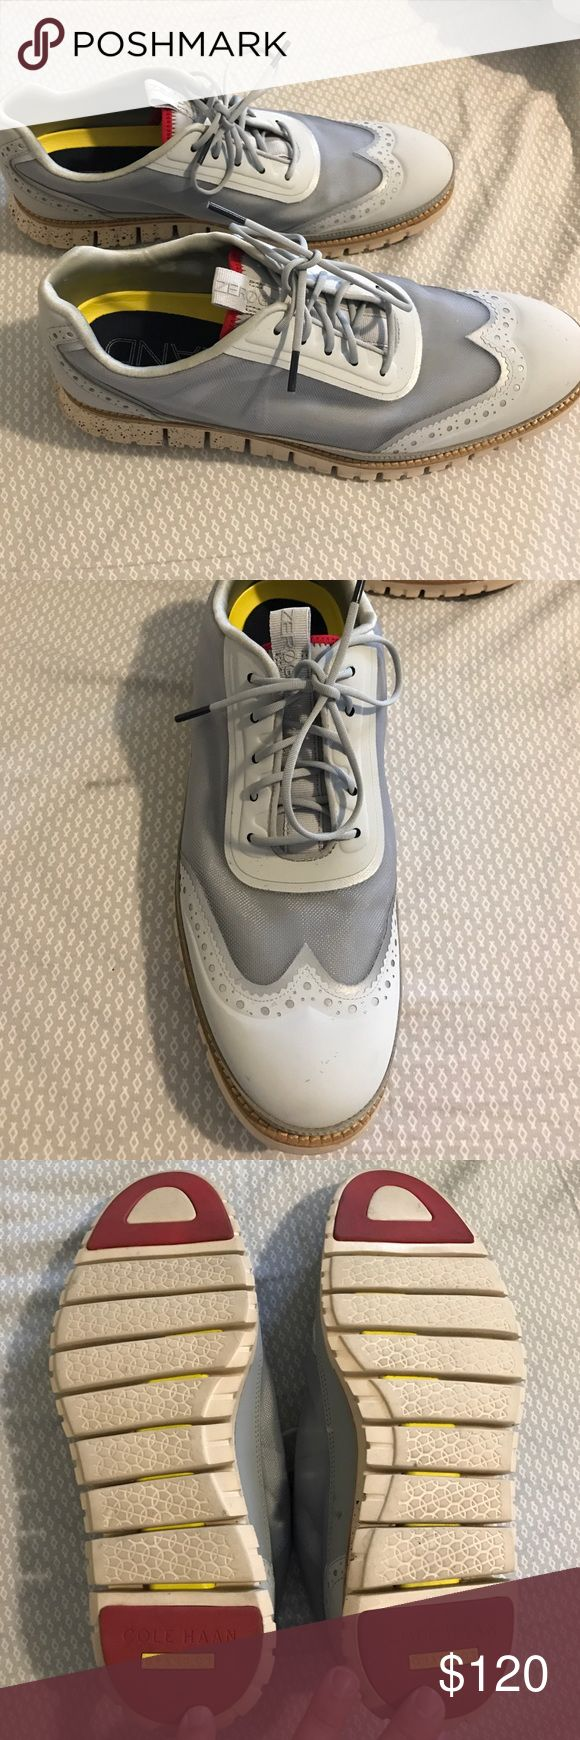 Men's Cole haan zero grand grey mesh sneakers Men's Cole haan zero grand grey mesh sneakers with leather and vinyl trim. Size 10.5. Barely worn Cole Haan Shoes Sneakers